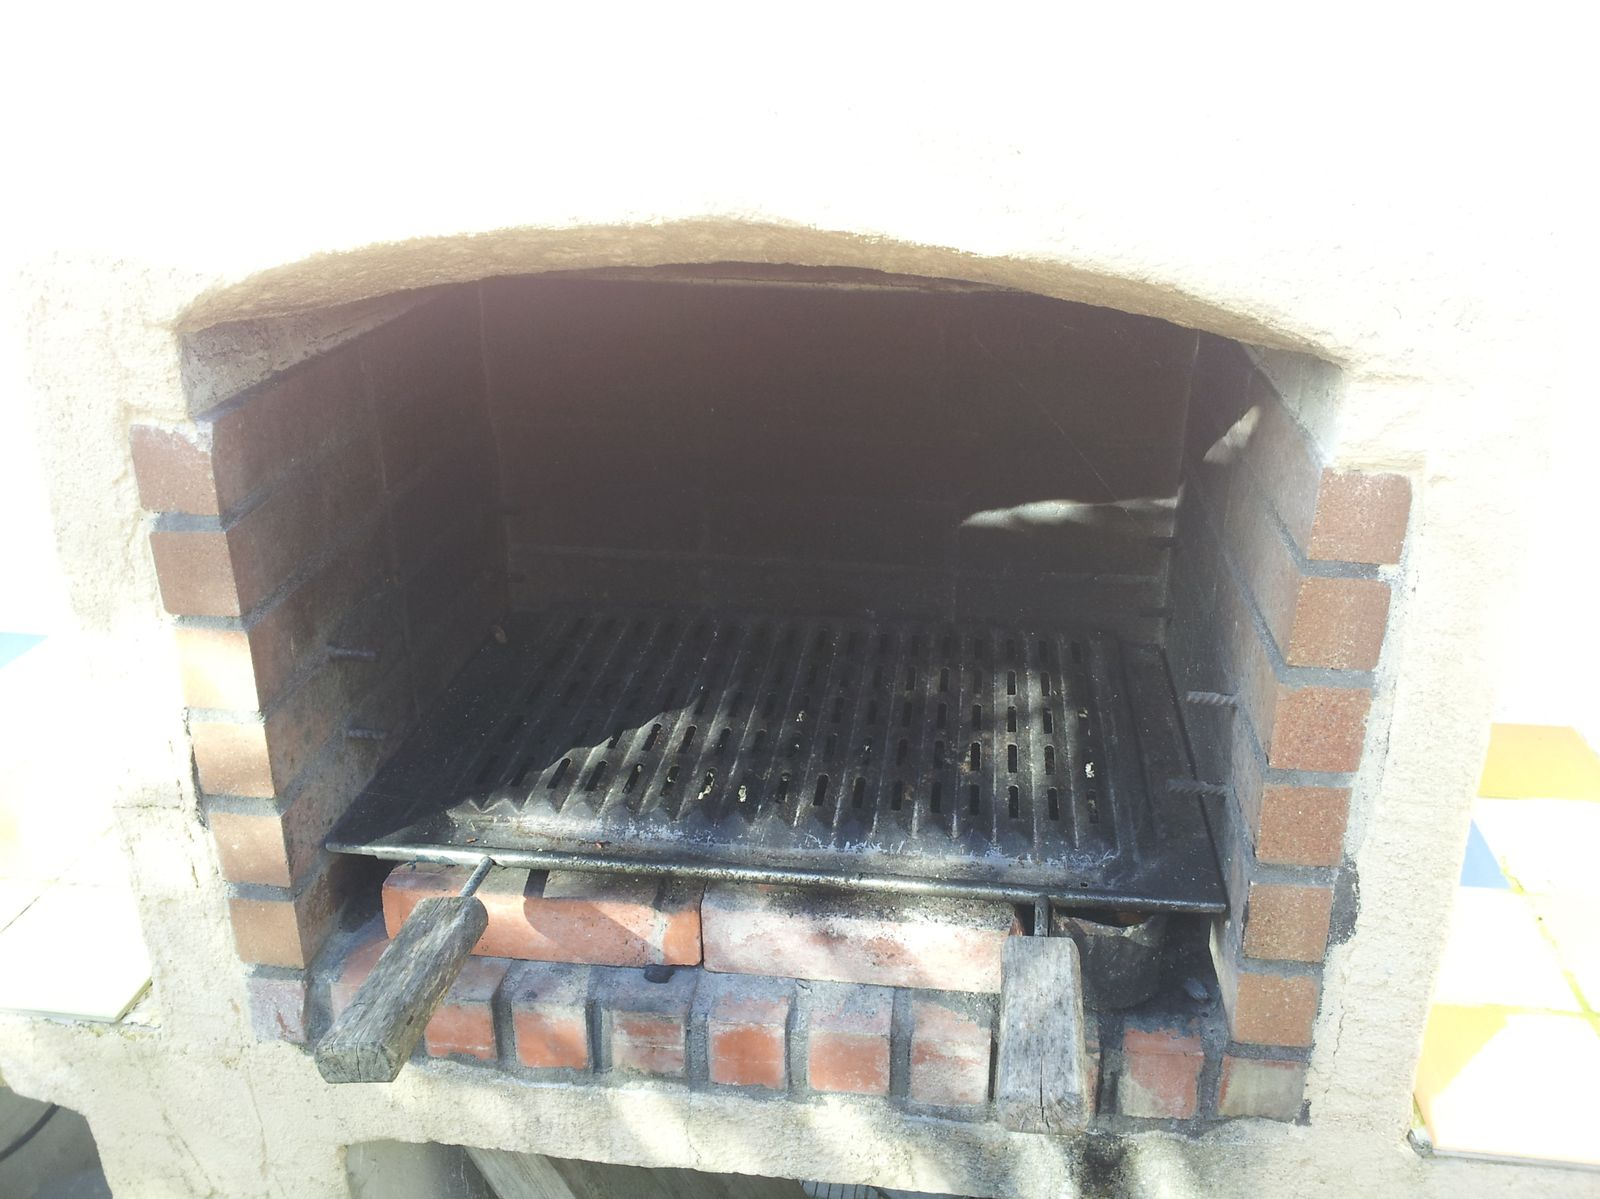 Faire Ses Elements De Cuisine En Beton Cellulaire Construction D Un Barbecue Sur Mesure Renaud Le Bricolo Over